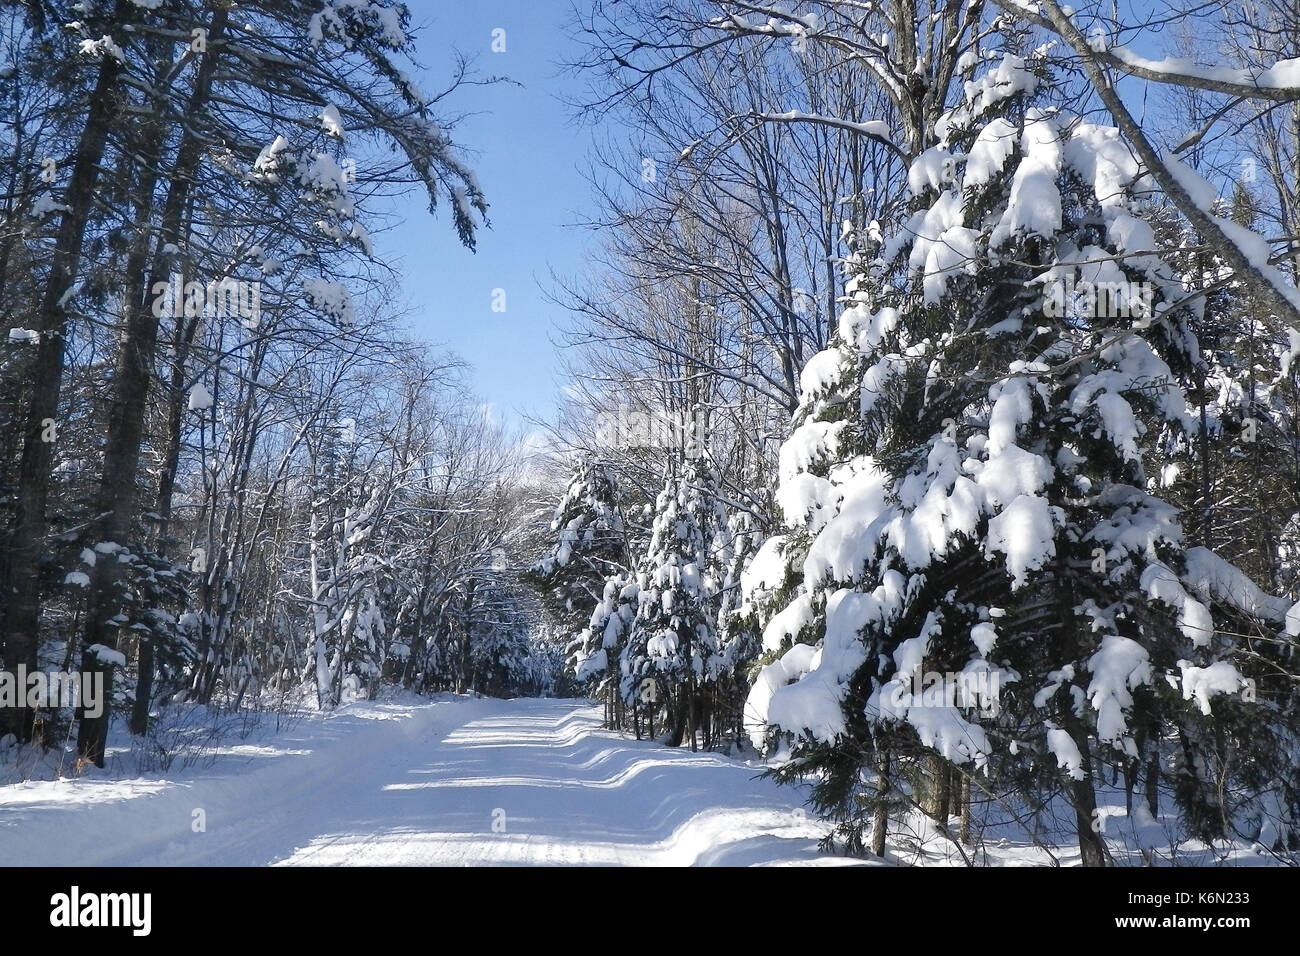 Snowmobile trail in the Adirondack Park, NY wilderness. - Stock Image